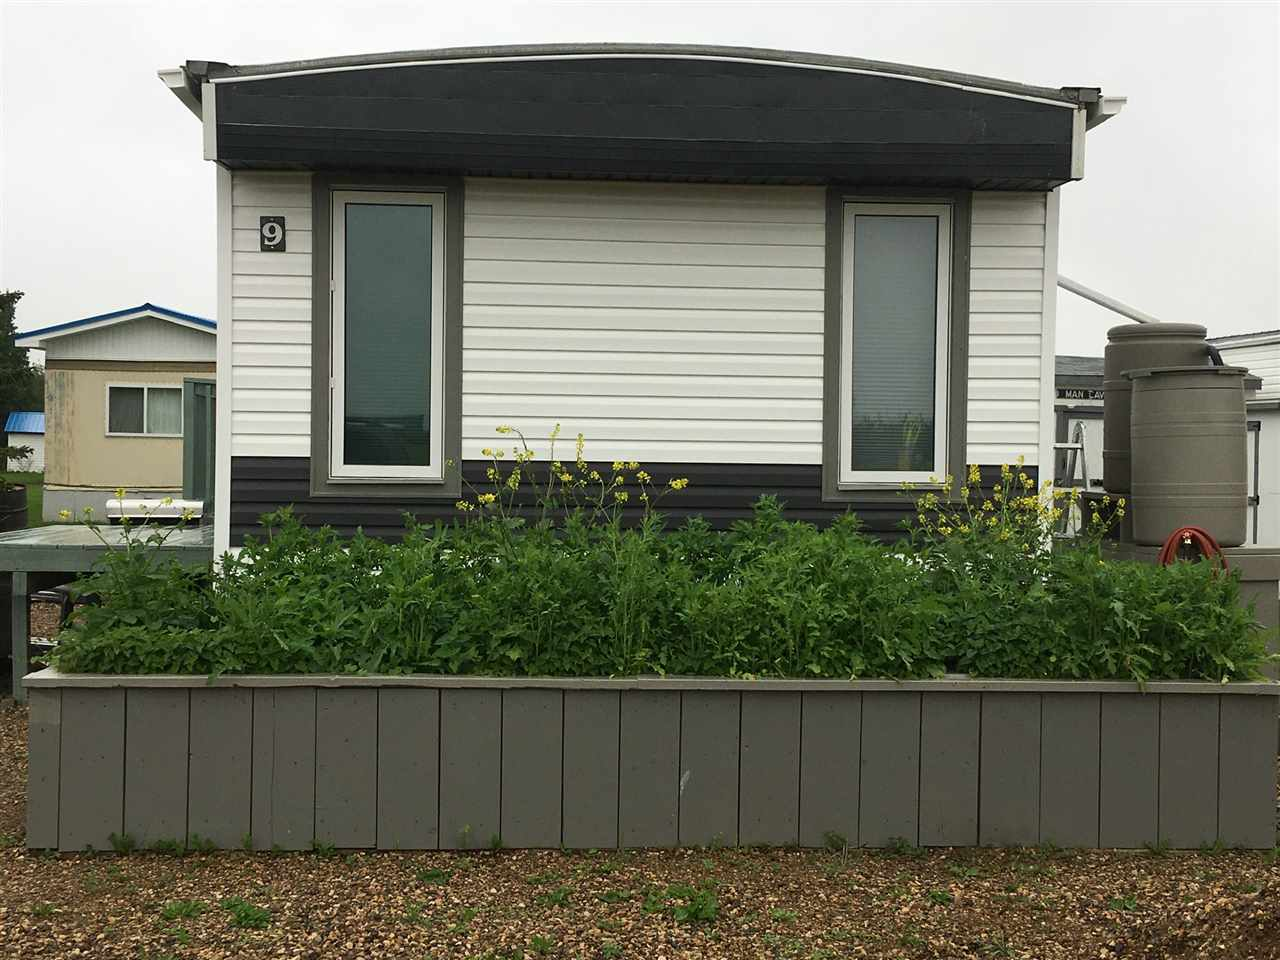 Better than new, this 2 Bedroom, 1 bathroom mobile has been completely renovated from top to bottom. New windows, siding, plumbing, electrical, flooring, paint and full bathroom renovations just to name a few of the upgrades. Conveniently located across from the Ryley School, this mobile home has one of the more spacious lots in the park. With reasonable lot rent and commutable distance to Edmonton, this home is affordable and move-in ready.